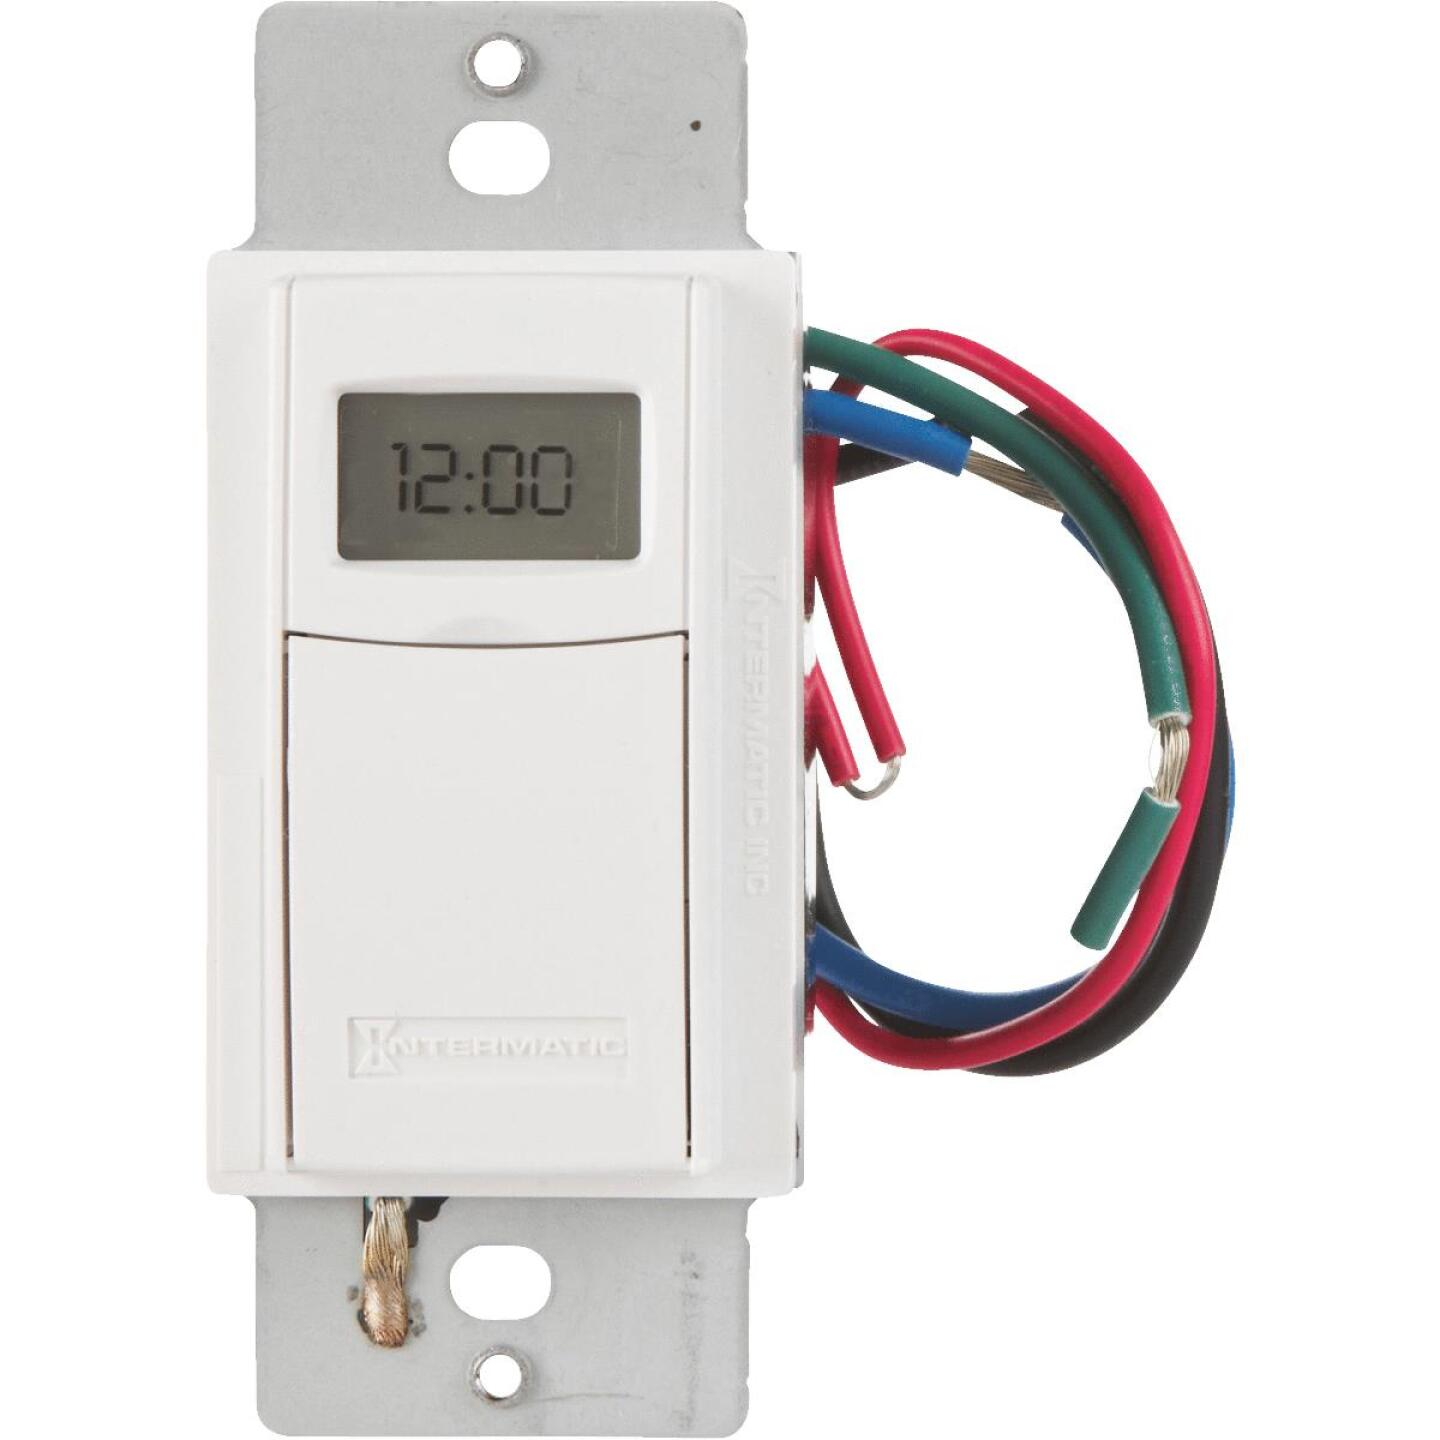 Intermatic 120V 15A 500W 24-Hour Timer Image 1